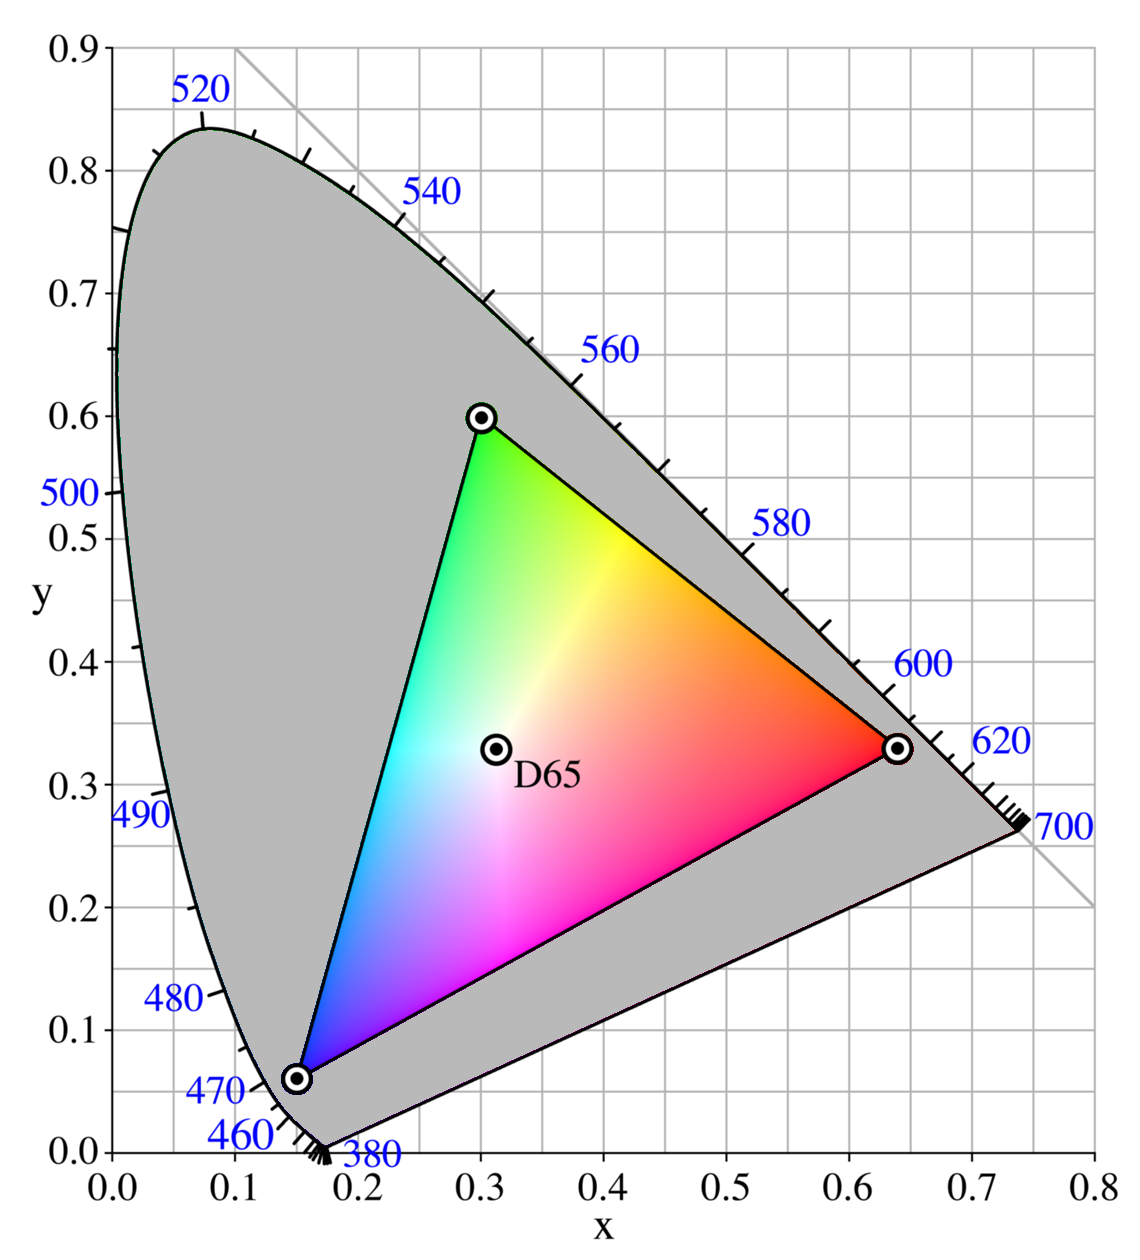 The RGB triangle